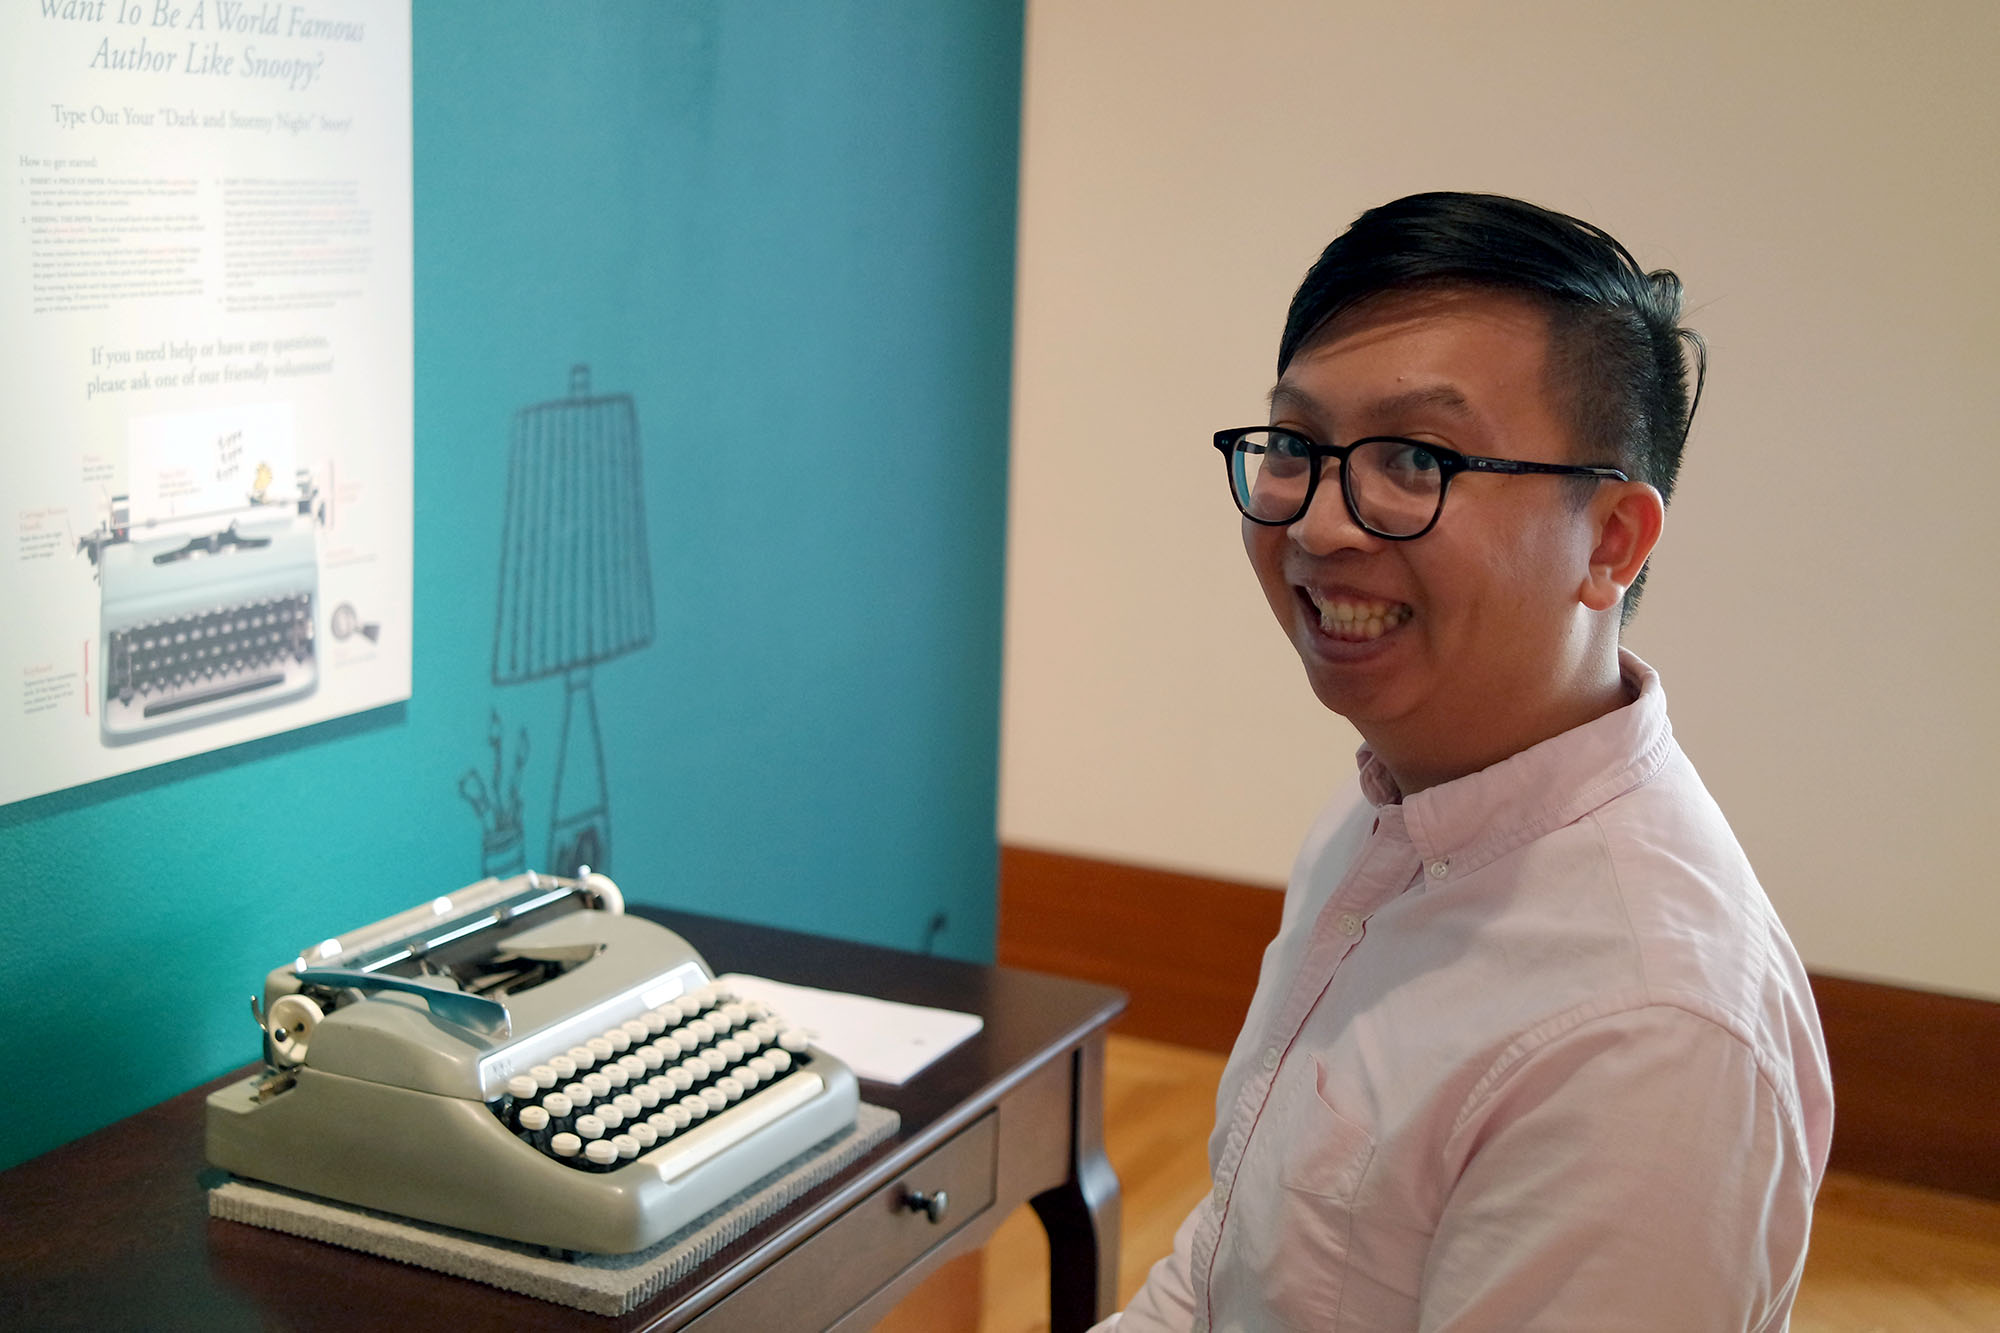 Picture of an Asian man sitting at a typewriter.